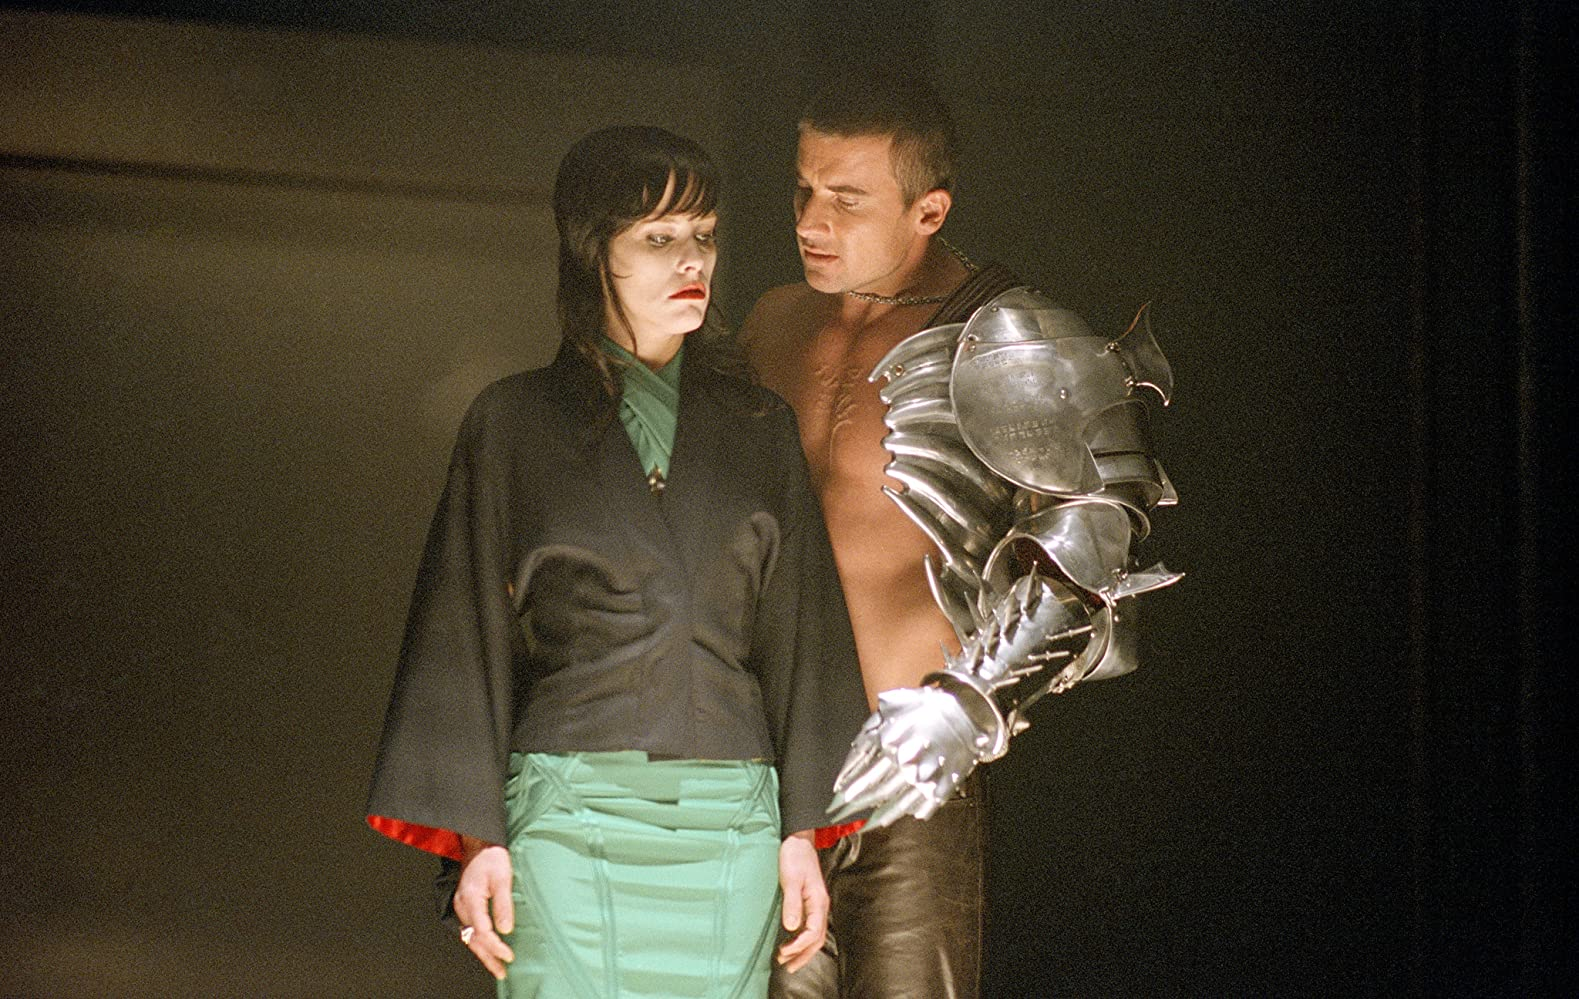 Parker Posey and Dominic Purcell in Blade: Trinity (2004)